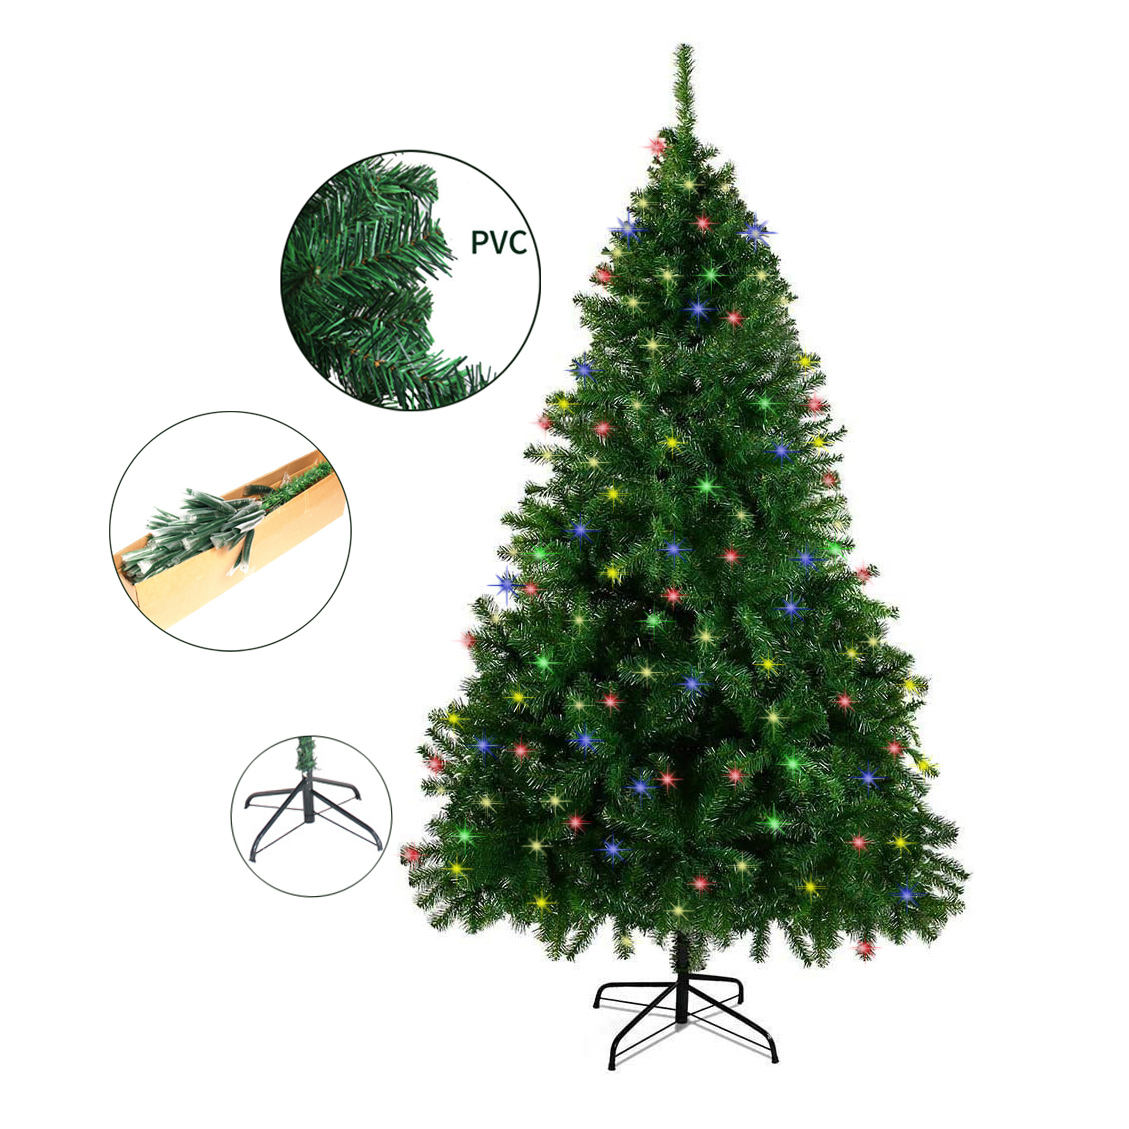 2020 hot sale costume indoor decoration prelit LED artificial Christmas tree